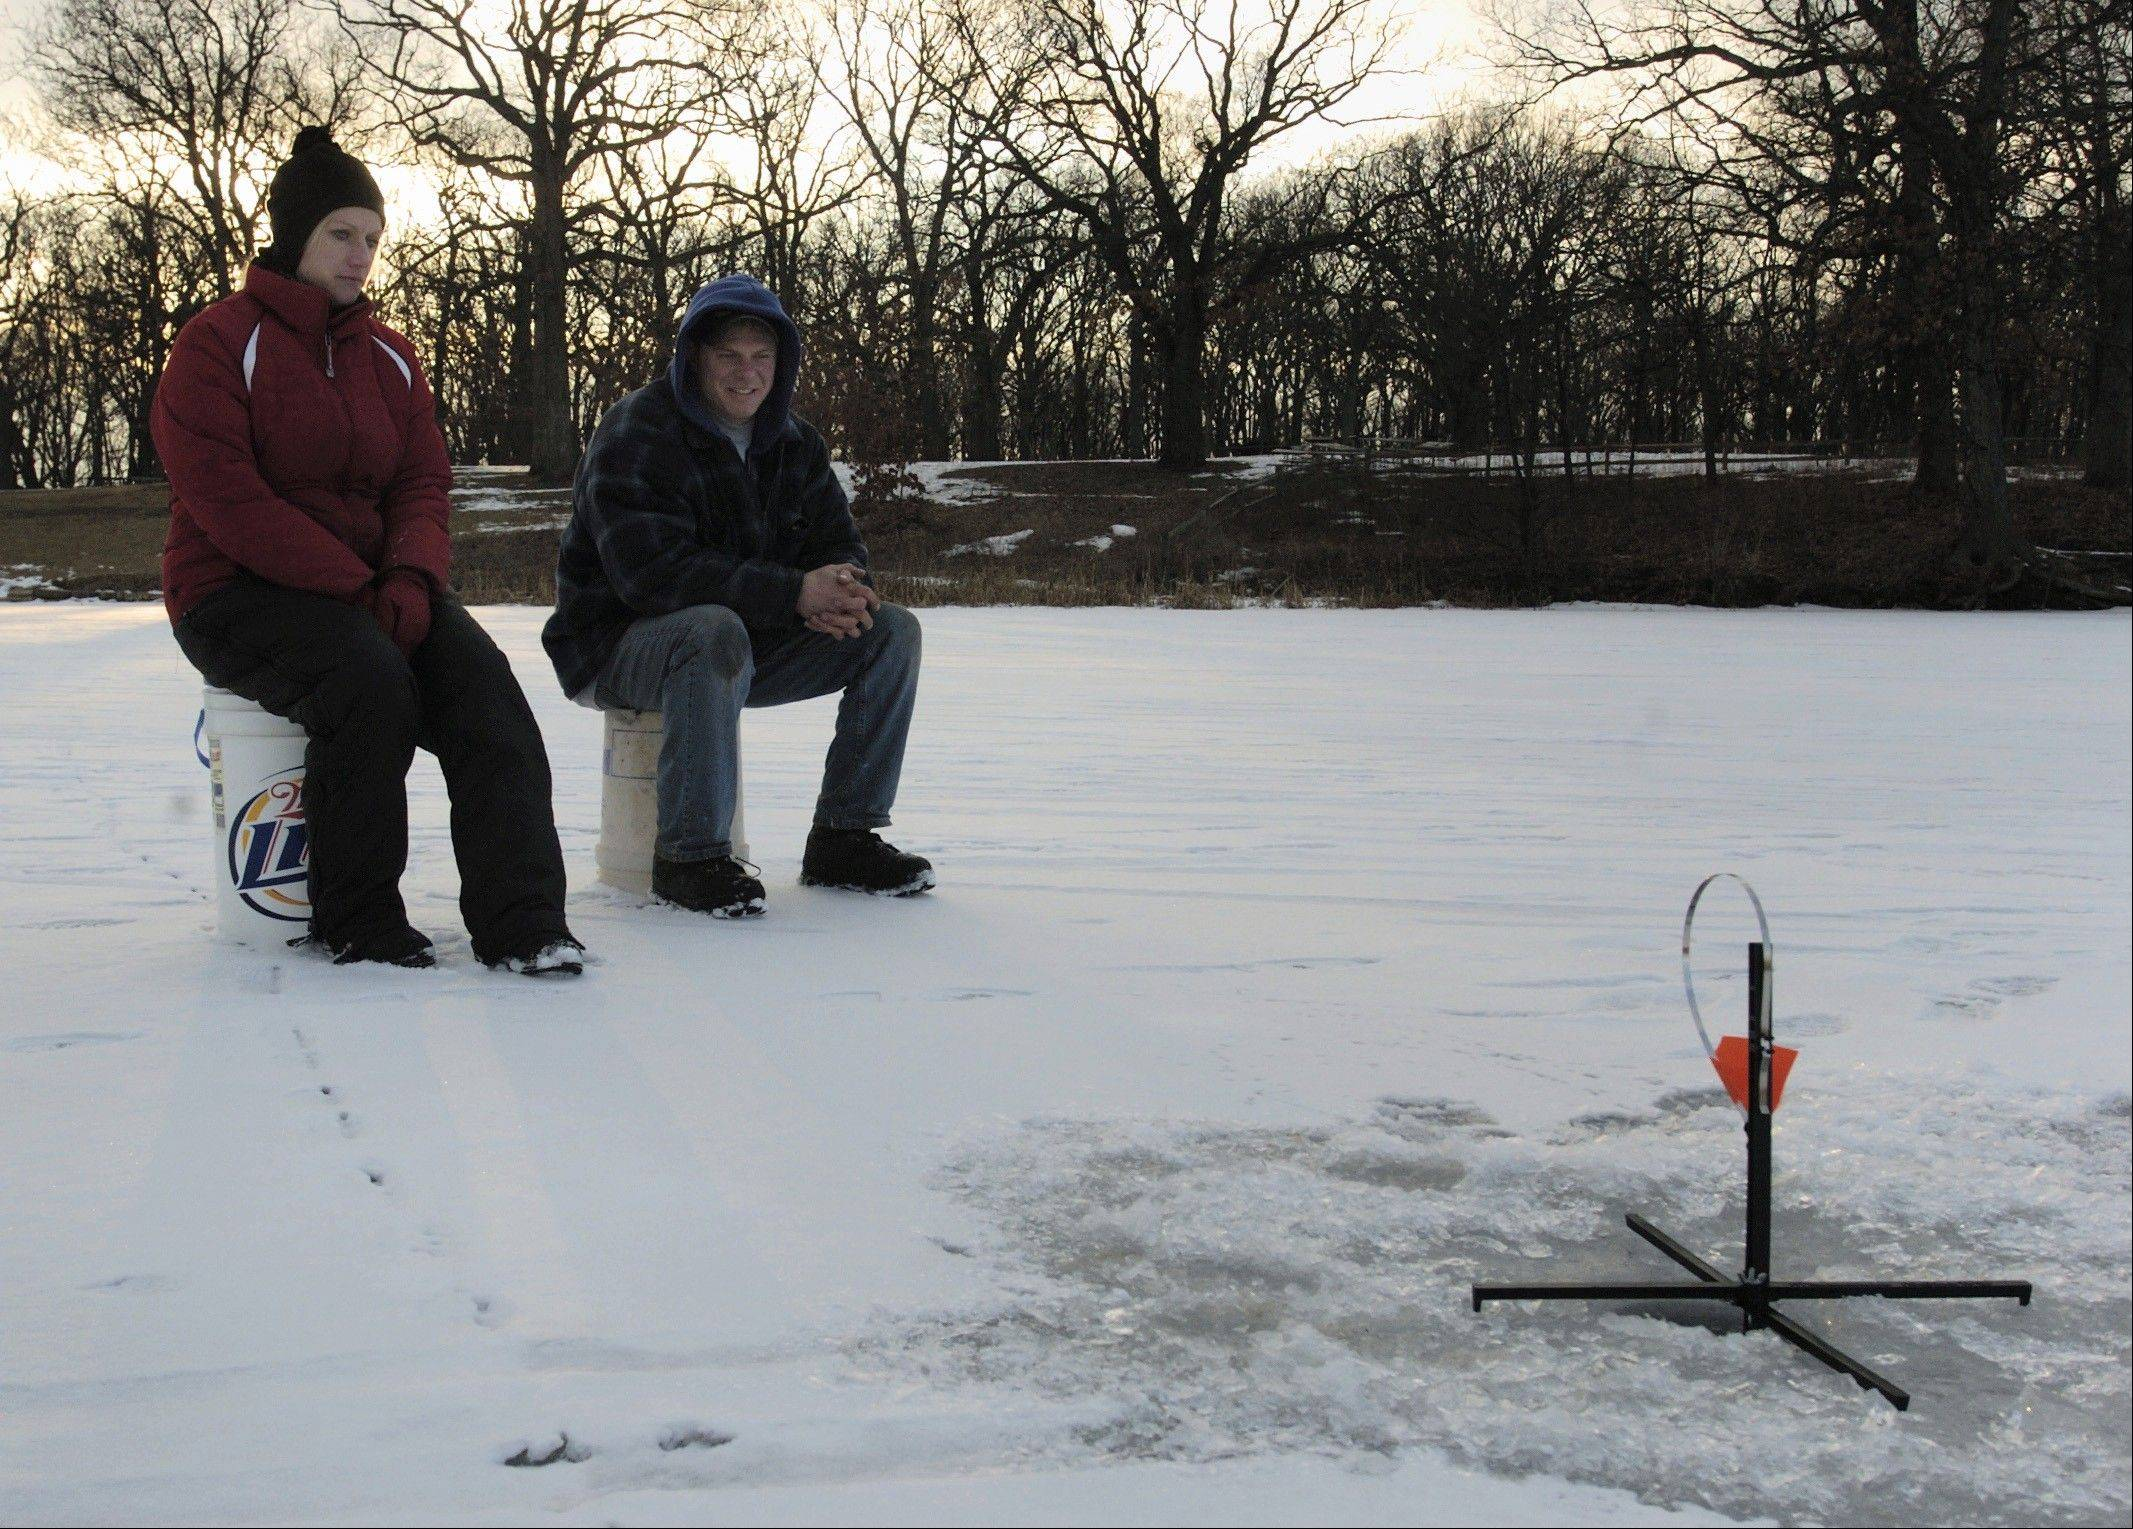 Ice-fishing fans can participate in the DuPage Forest Preserve District's Hard-Water Classic from noon to 3:30 p.m. Jan. 5 on Silver Lake at Blackwell Forest Preserve near Warrenville.